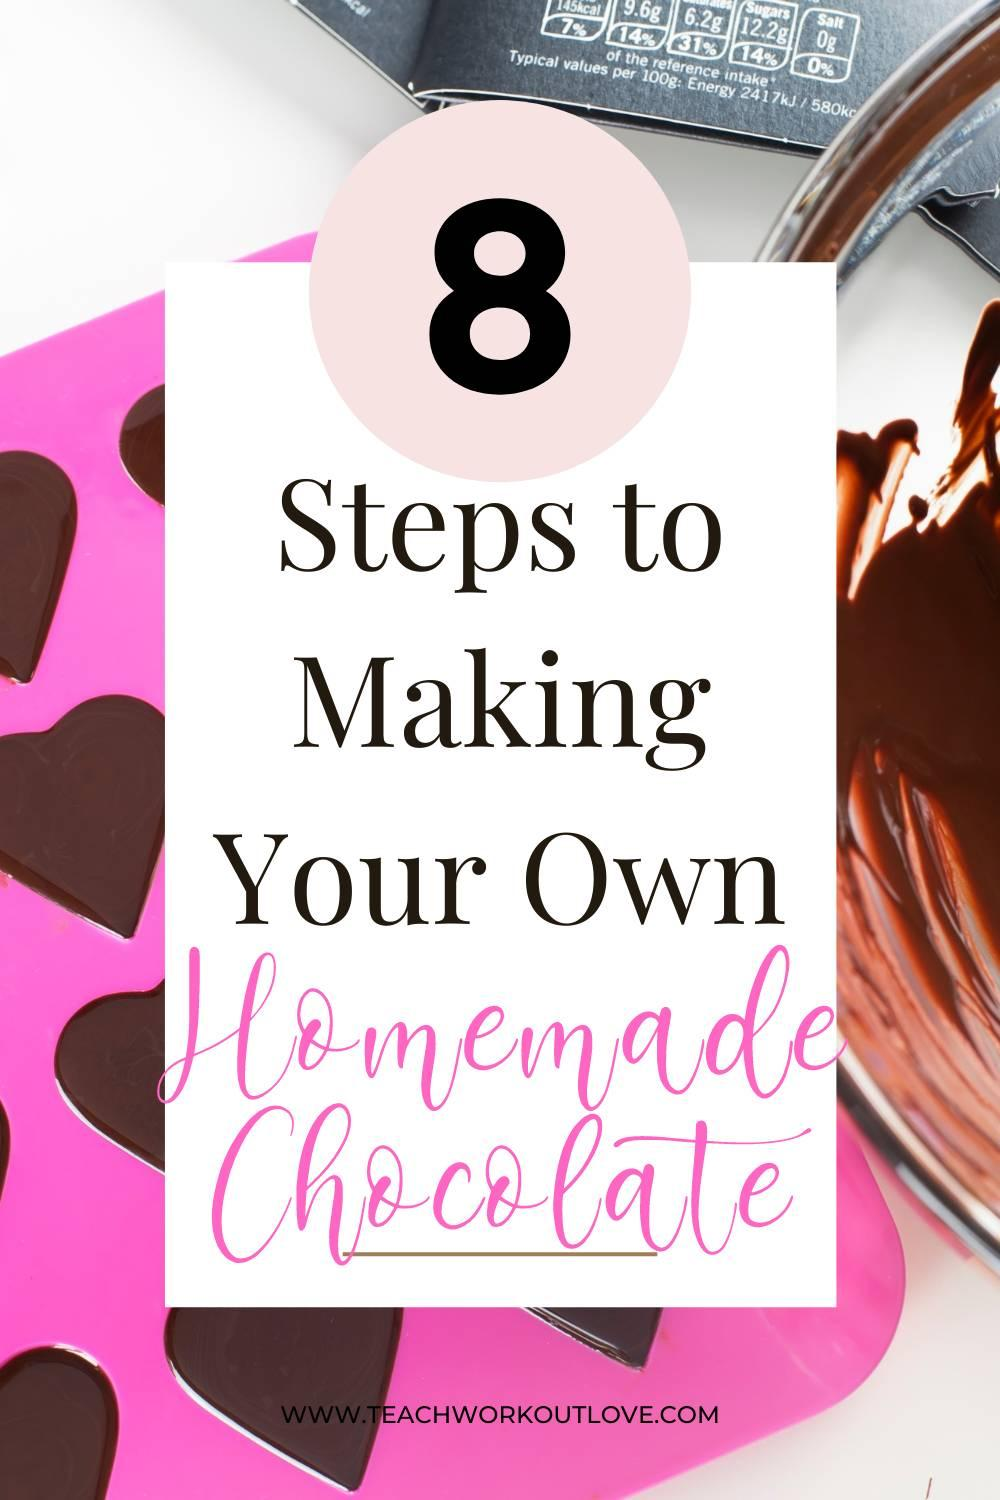 Want to try out a new hobby? Learn how to make homemade chocolate in 8 easy steps. Plus find a chocolate making kit!